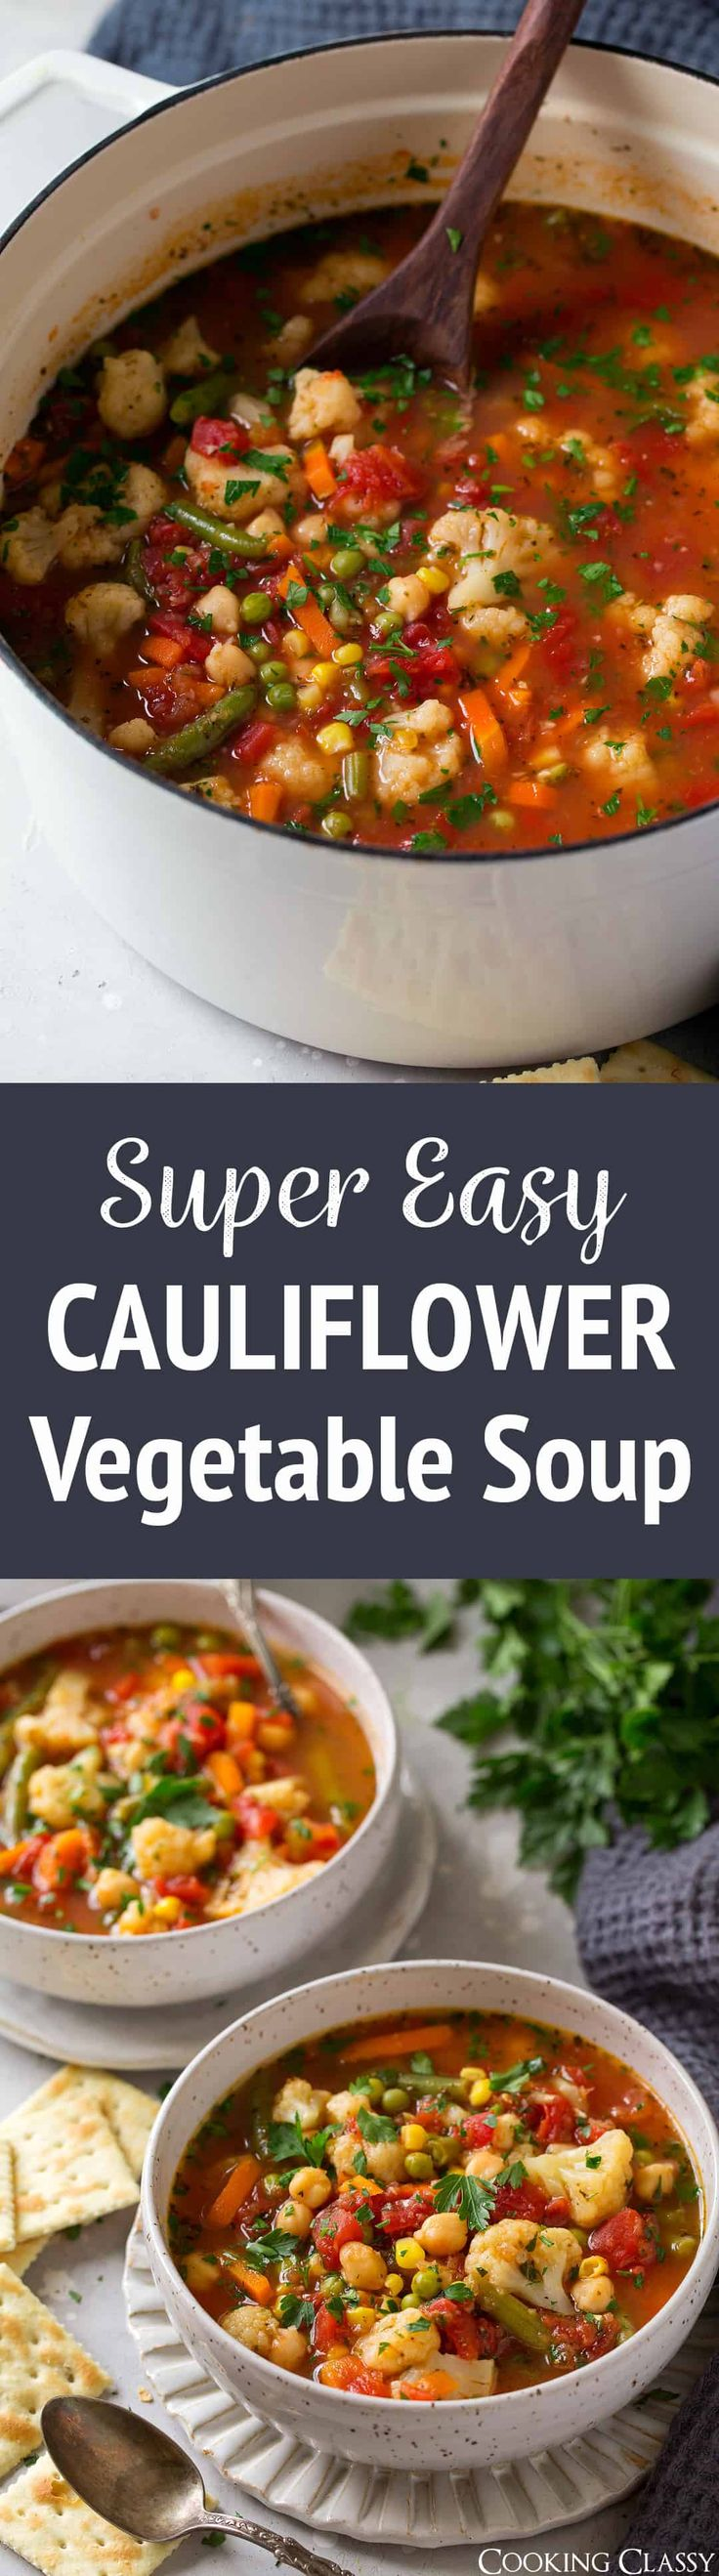 Super Easy Cauliflower Vegetable Soup - this vegetable soup is about as easy as it gets! Most of the veggies are pre-cut so the tedious part is already done. Perfect for busy days and those dreadful sick days. It also makes great leftovers for lunch.